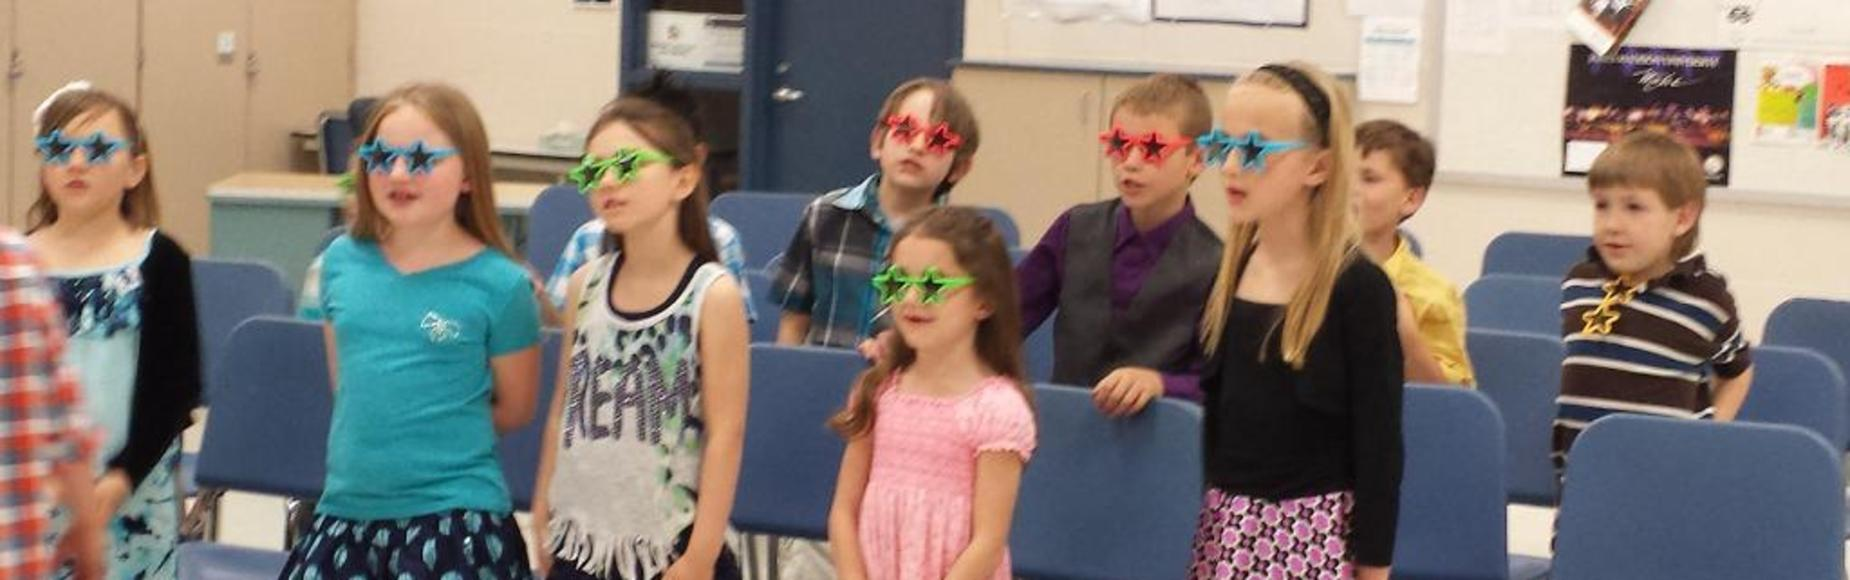 Students in Star Glasses Picture